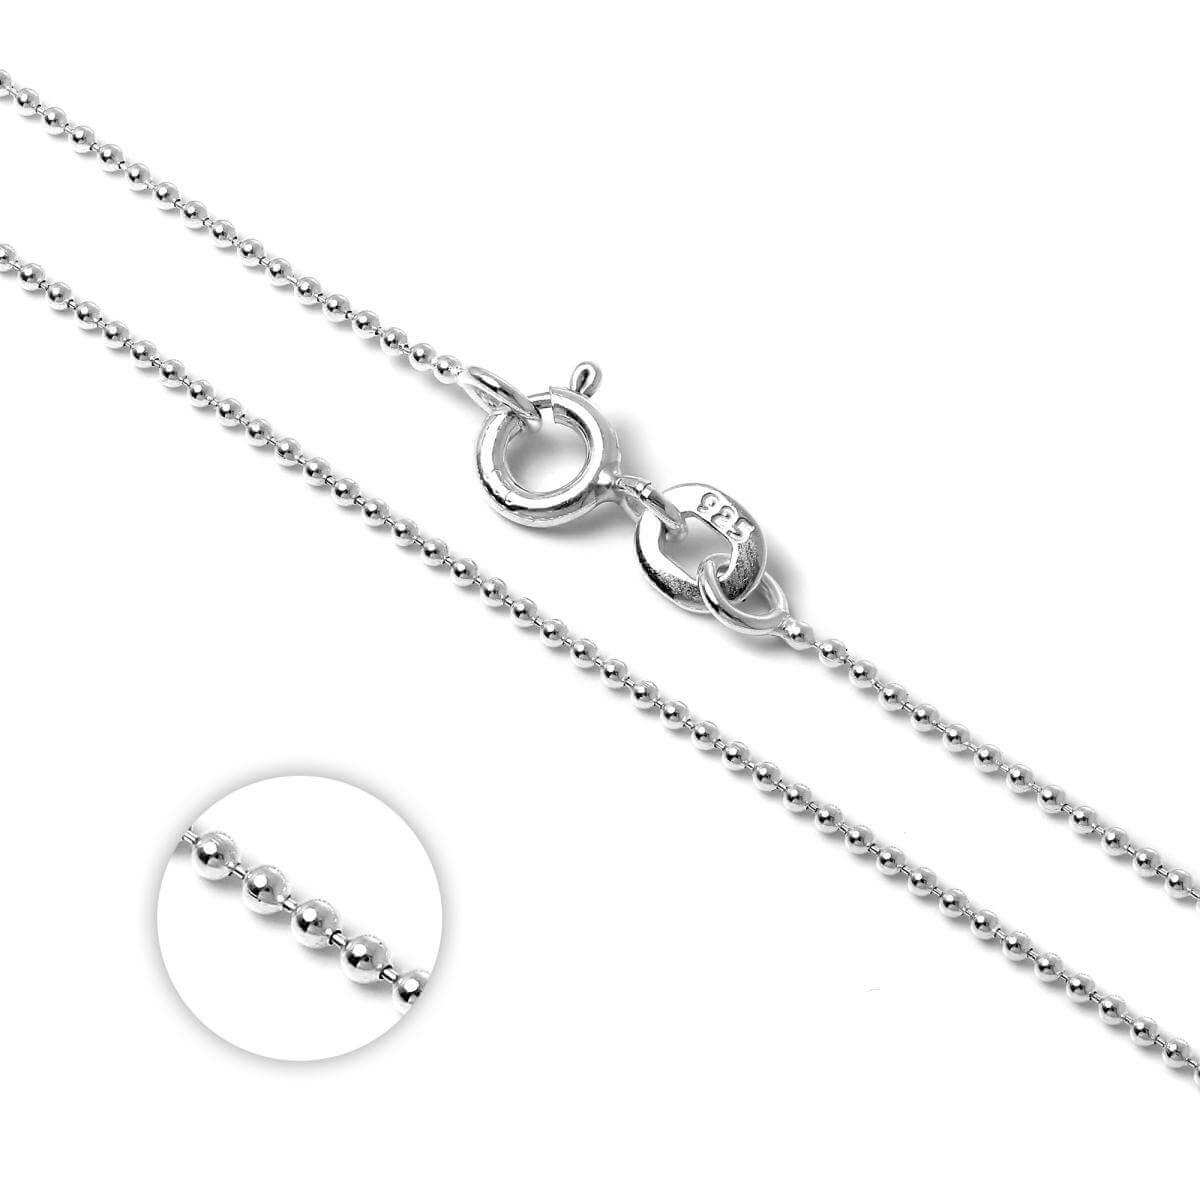 Sterling Silver 1mm Bead Chain 14 - 22 Inches